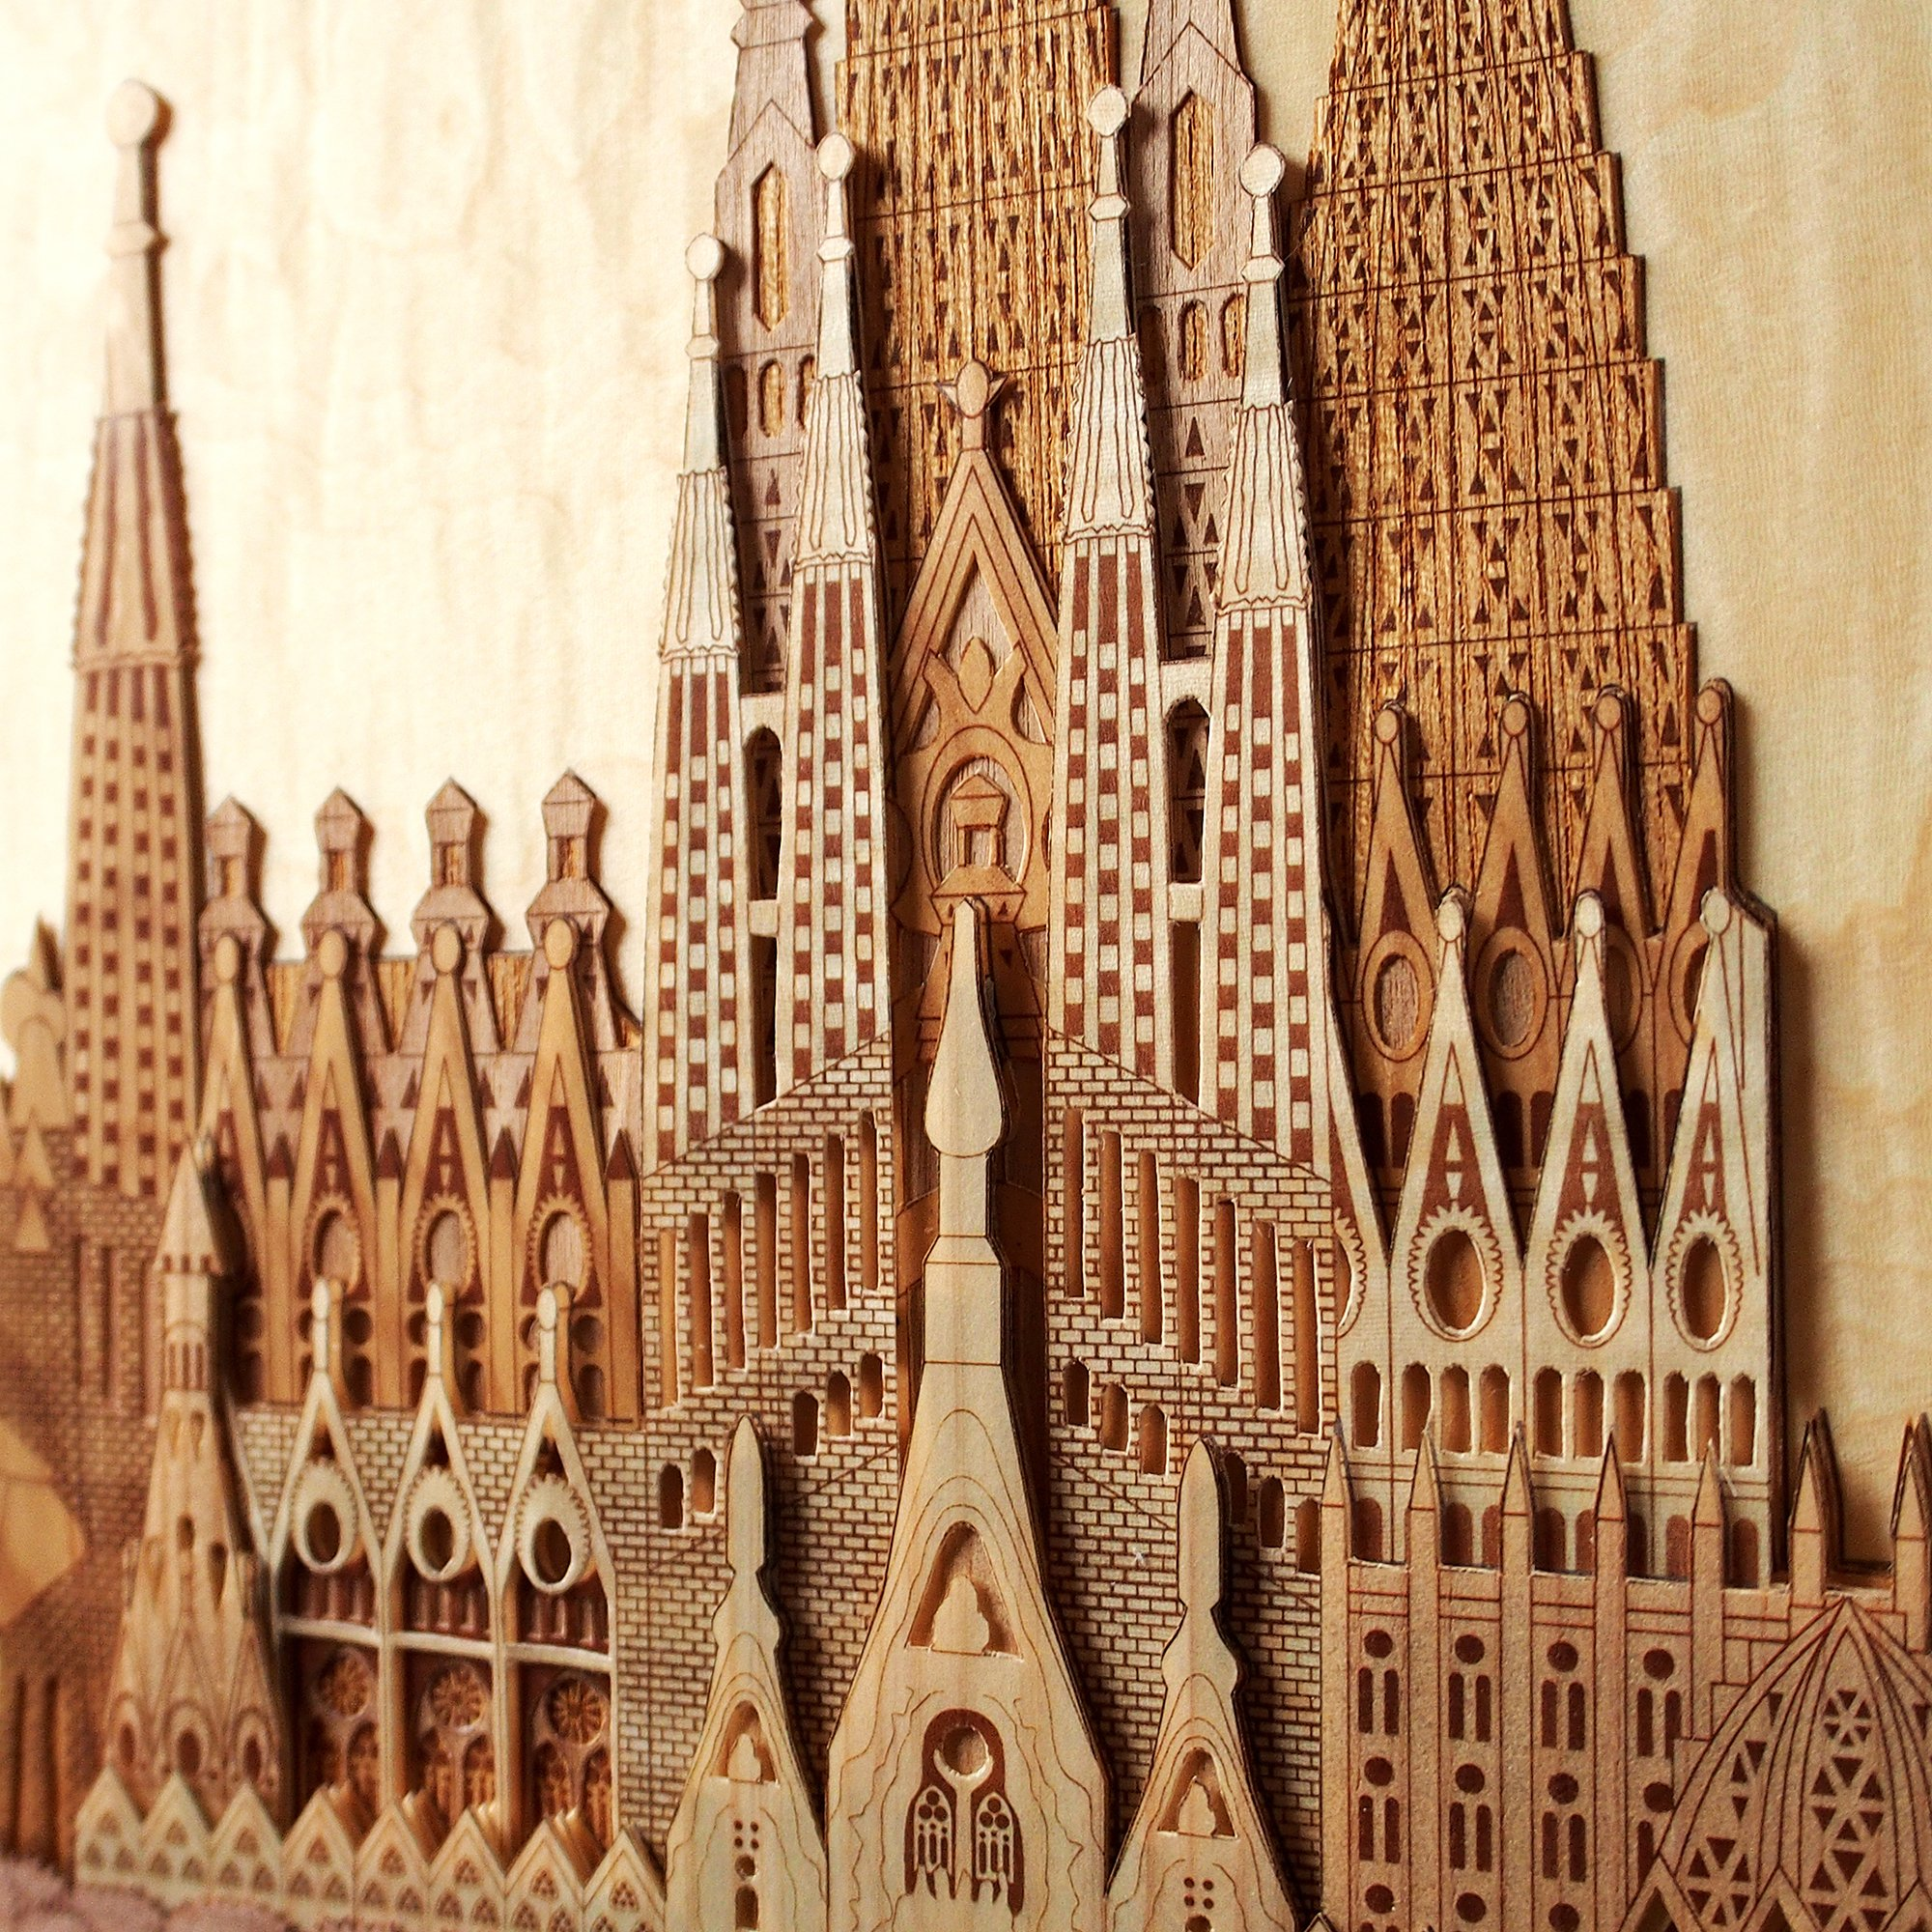 KINOWA Wooden Art Kit Kiharie Sagrada Familia Made in Japan by KINOWA (Image #6)